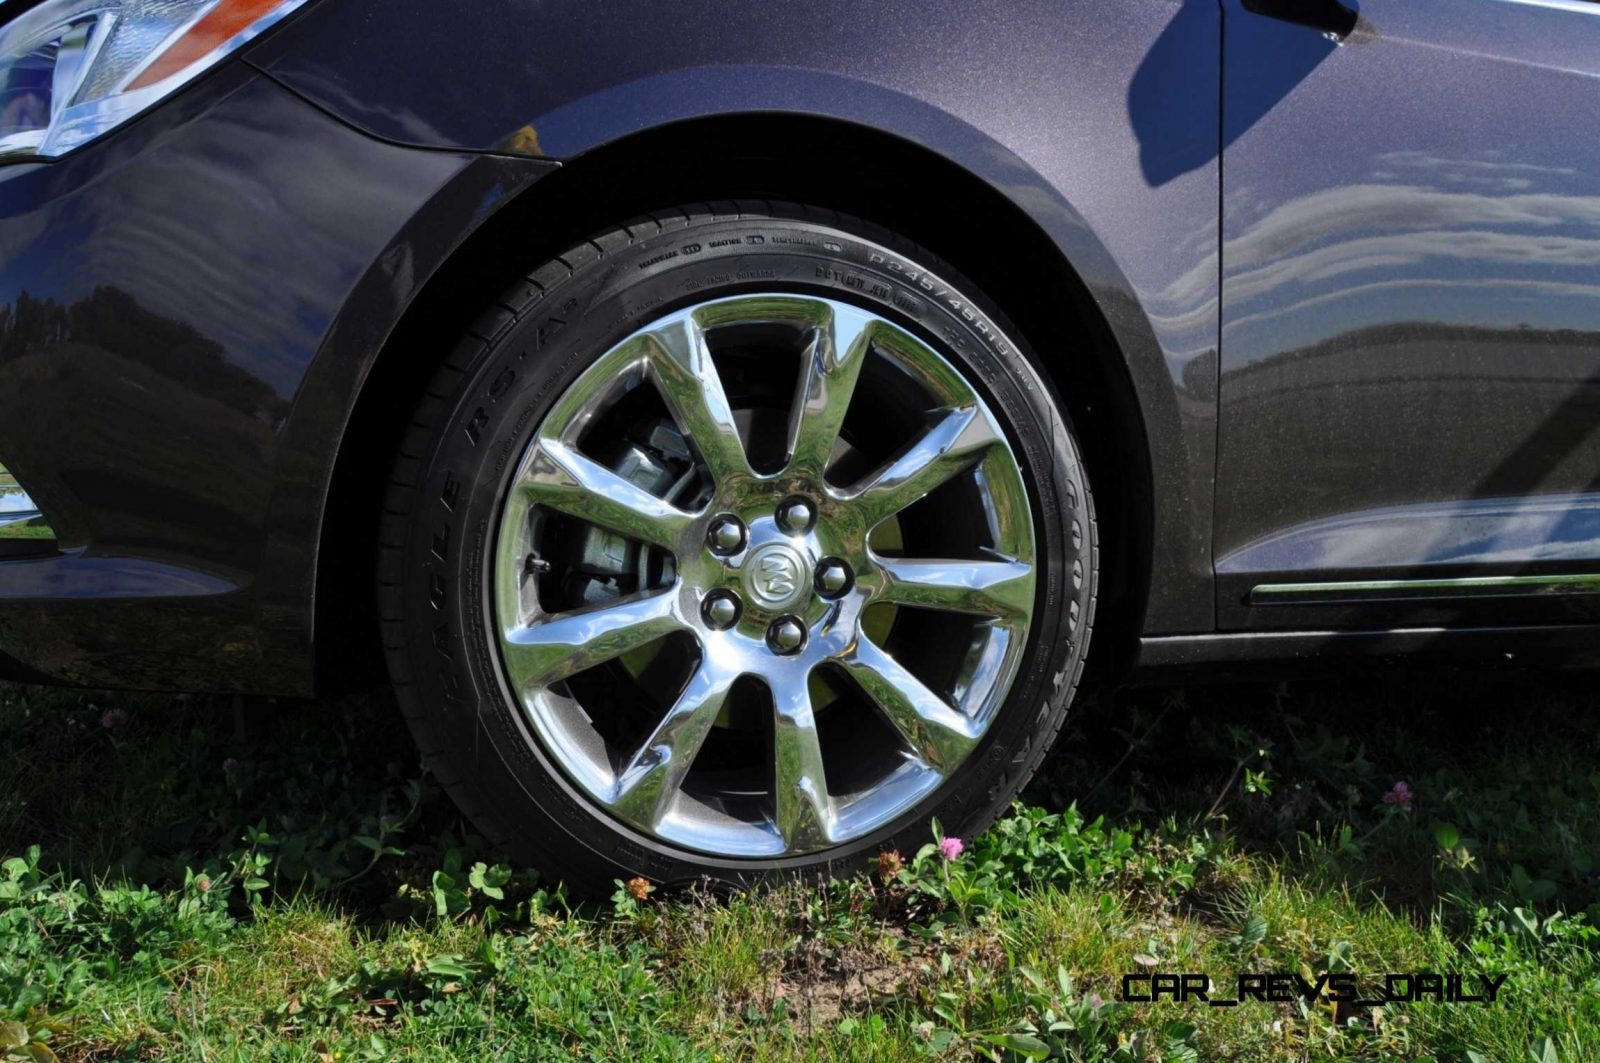 Driven Car Review - 2014 Buick LaCrosse Is Huge, Smooth and Silent23